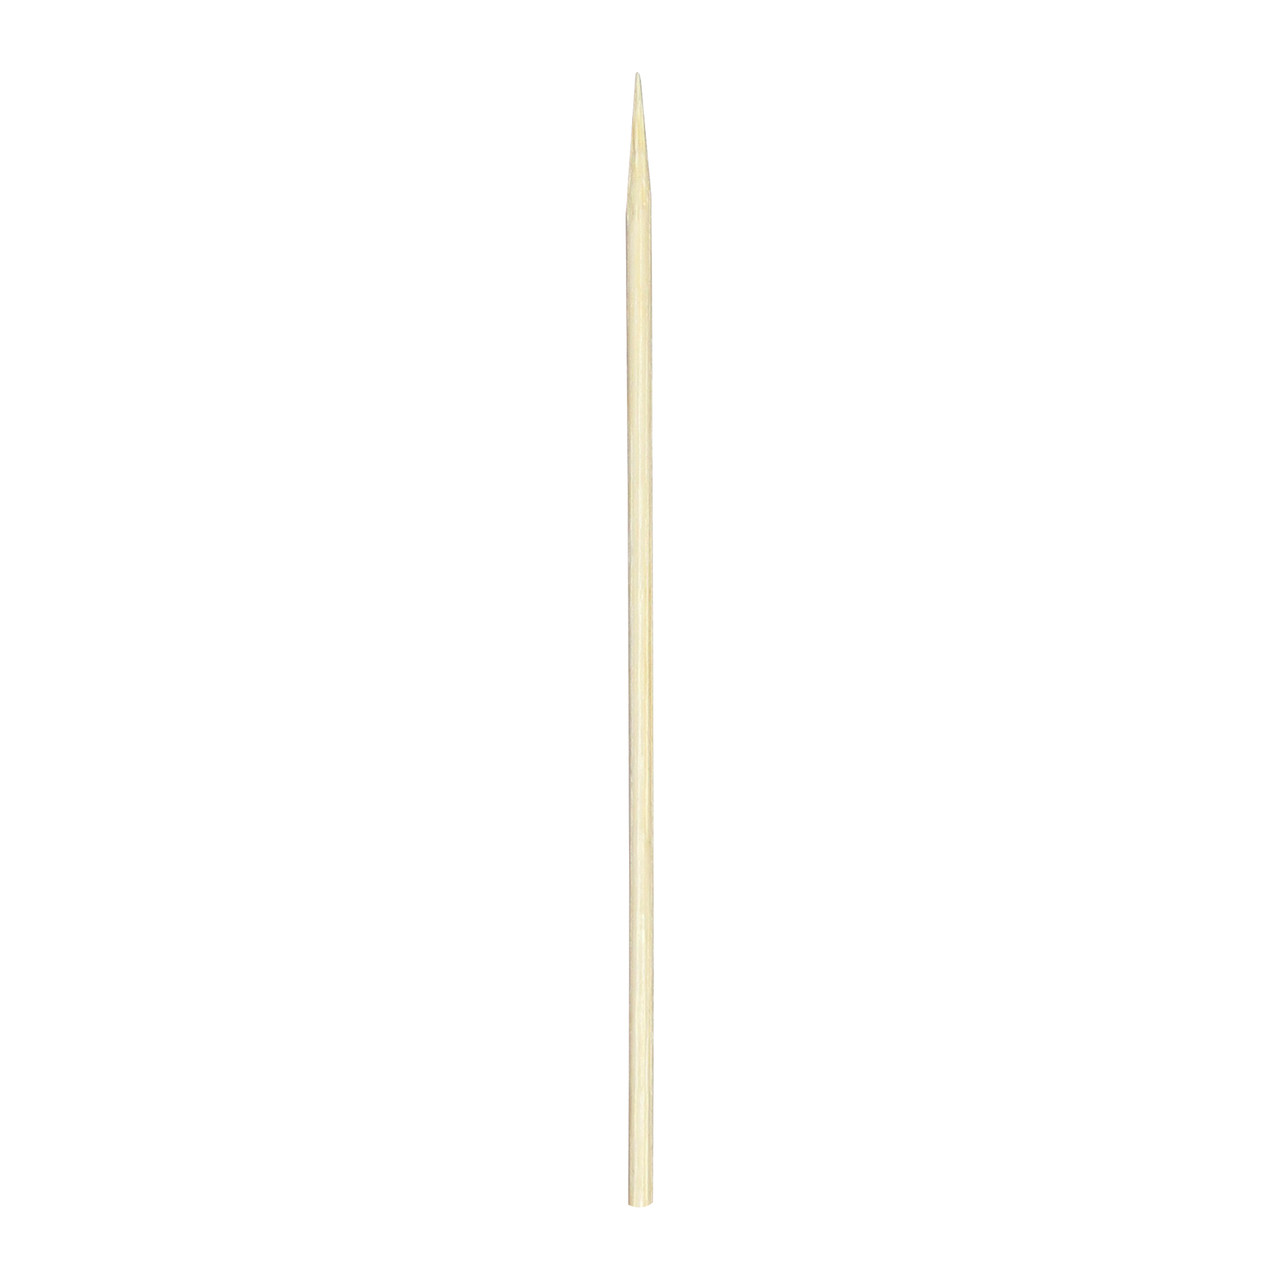 Bamboo Bbq Skewers - Dia:.1in L:5.85in